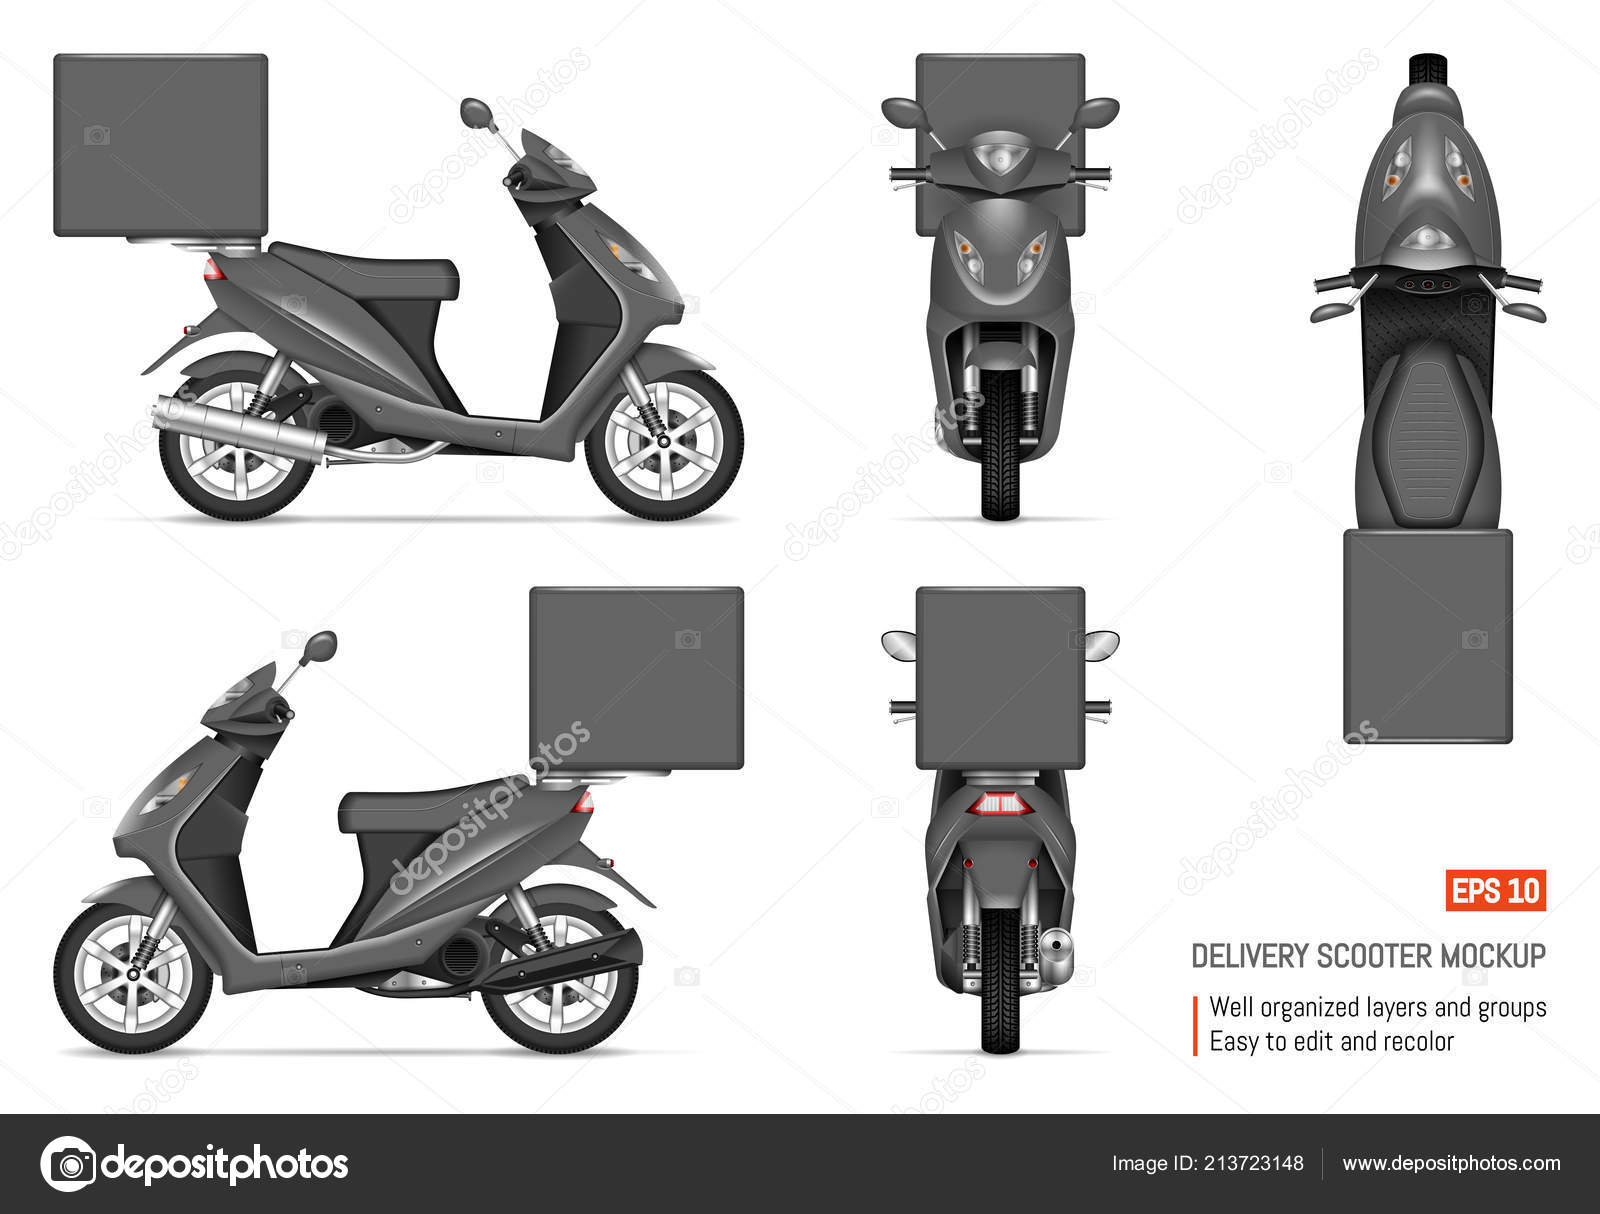 delivery scooter vector mockup white vehicle branding corporate identity view stock vector c imgvector 213723148 delivery scooter vector mockup white vehicle branding corporate identity view stock vector c imgvector 213723148